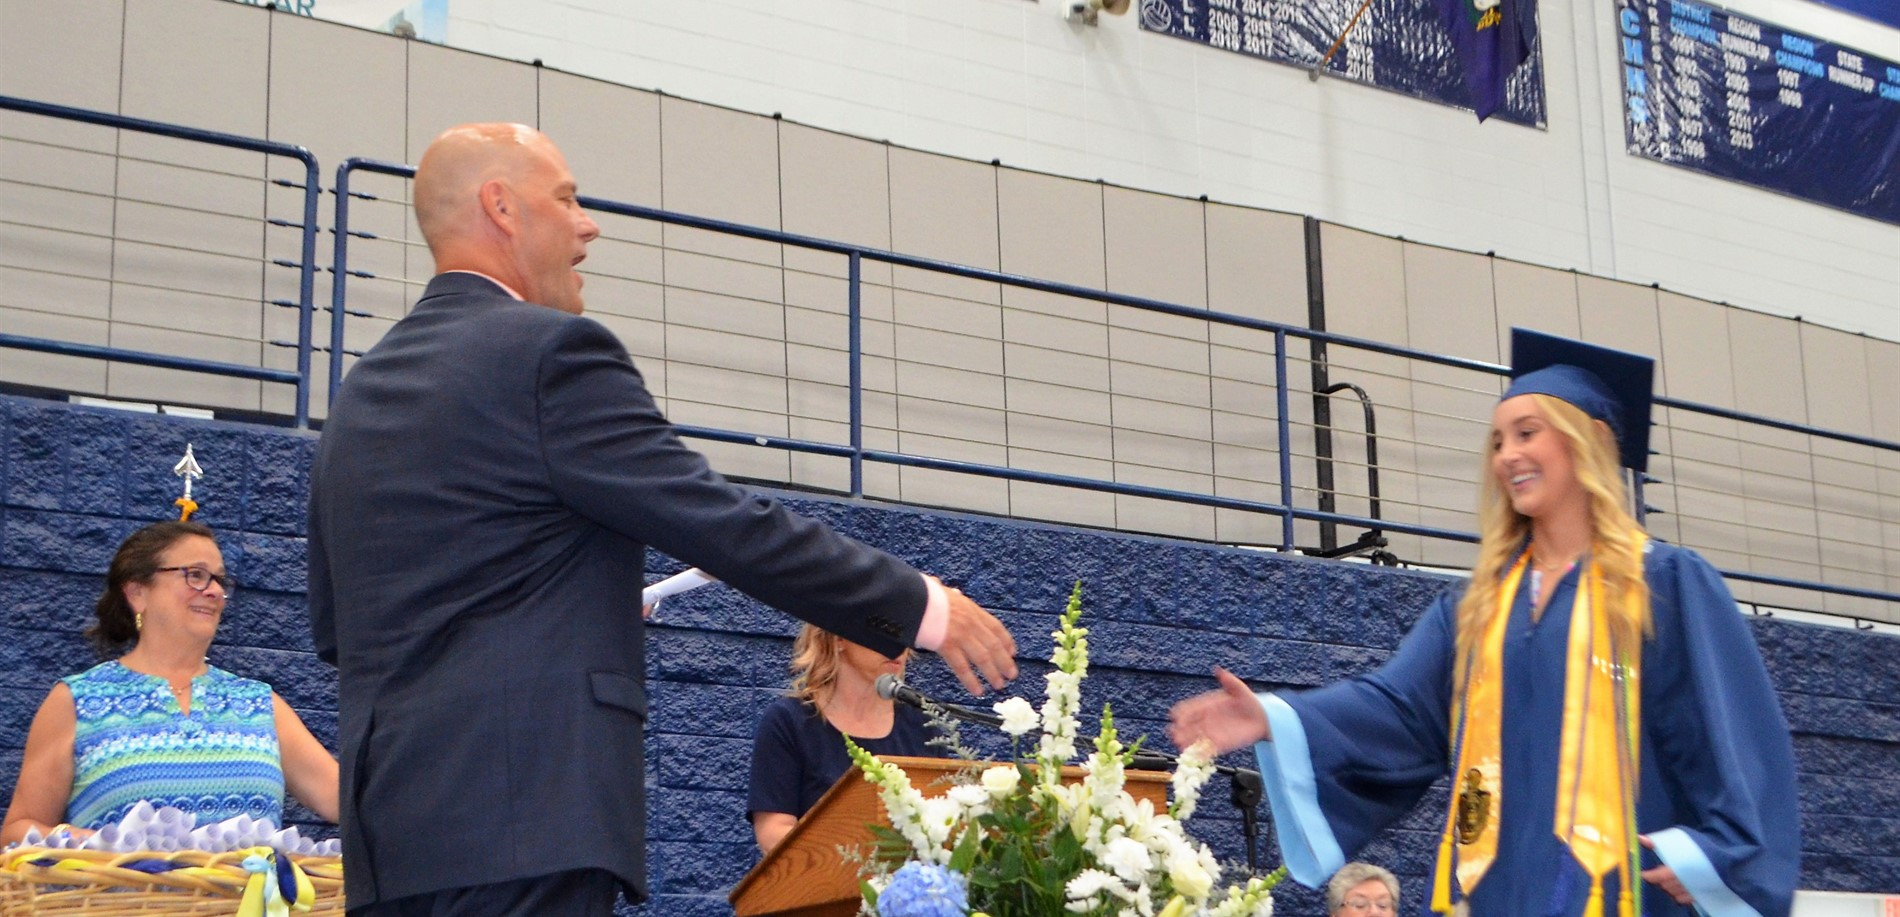 Central Hardin High School Principal Tim Isaacs greeted a graduate with her diploma and congratulations.